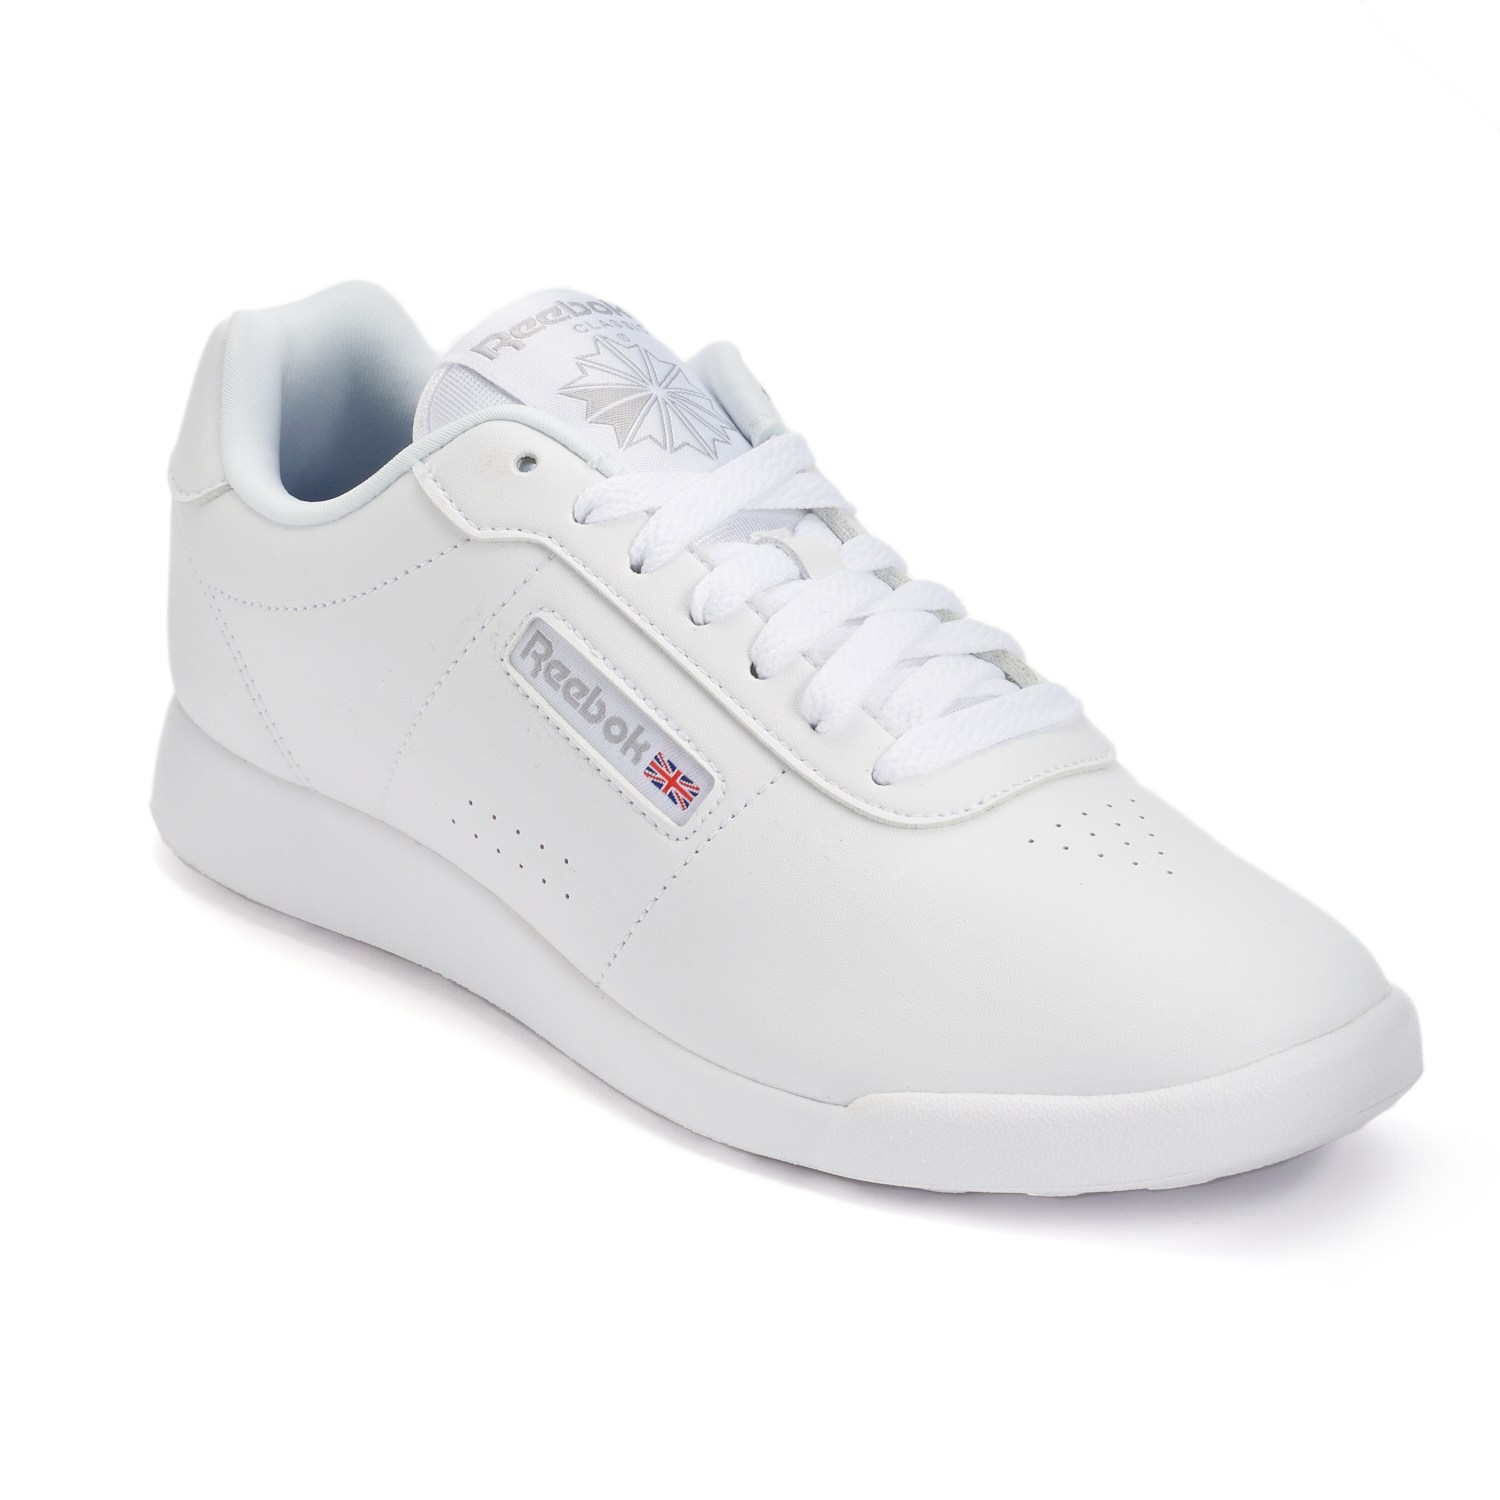 reebok princess sale LEZOADZ